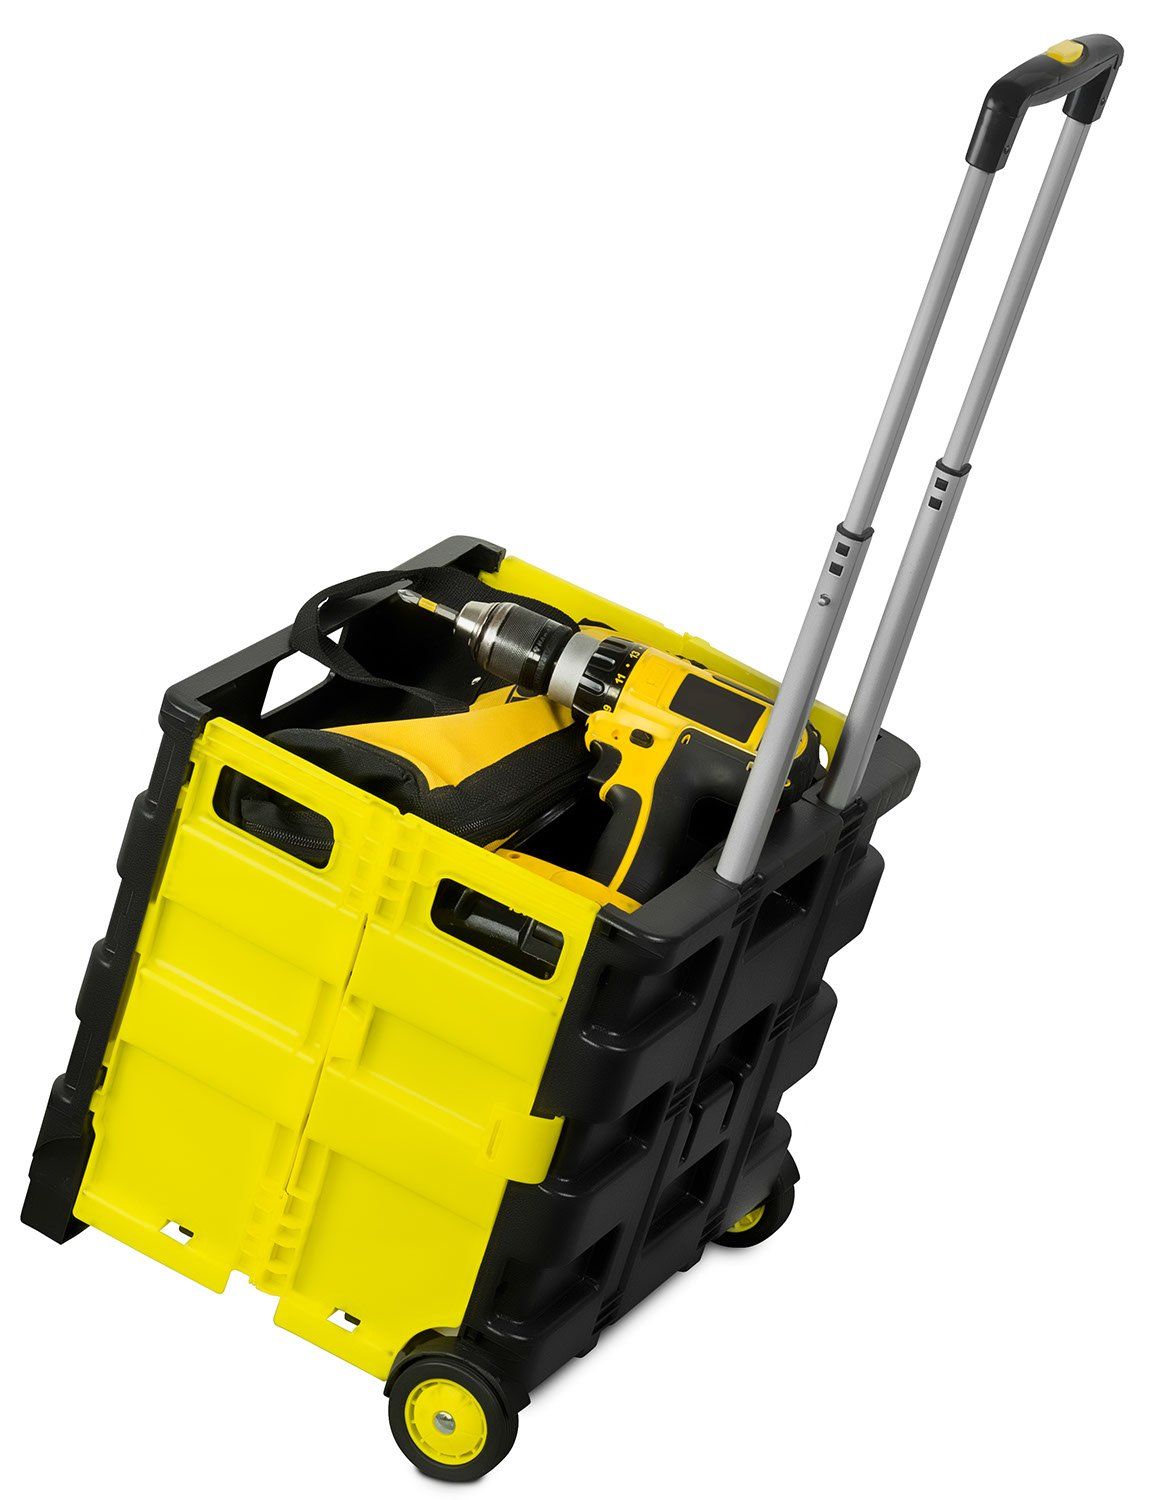 Mount-It! Rolling Utility Cart, Folding and Collapsible Hand Crate on Wheels, 55 Lbs Capacity